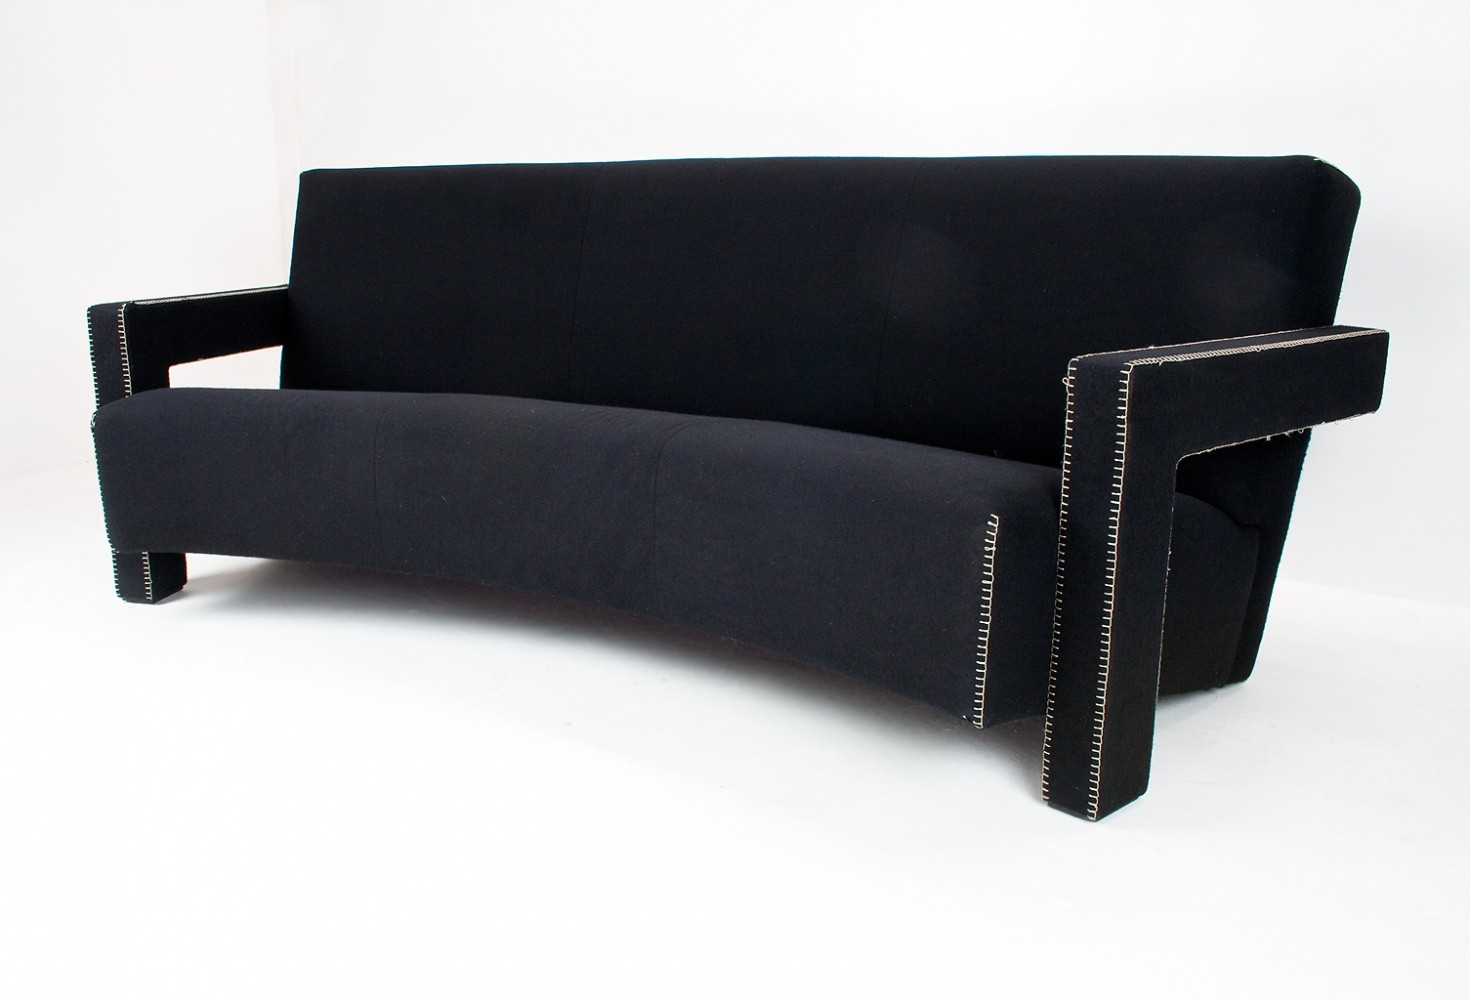 Utrecht sofa by Gerrit Rietveld for Cassina, 1930s